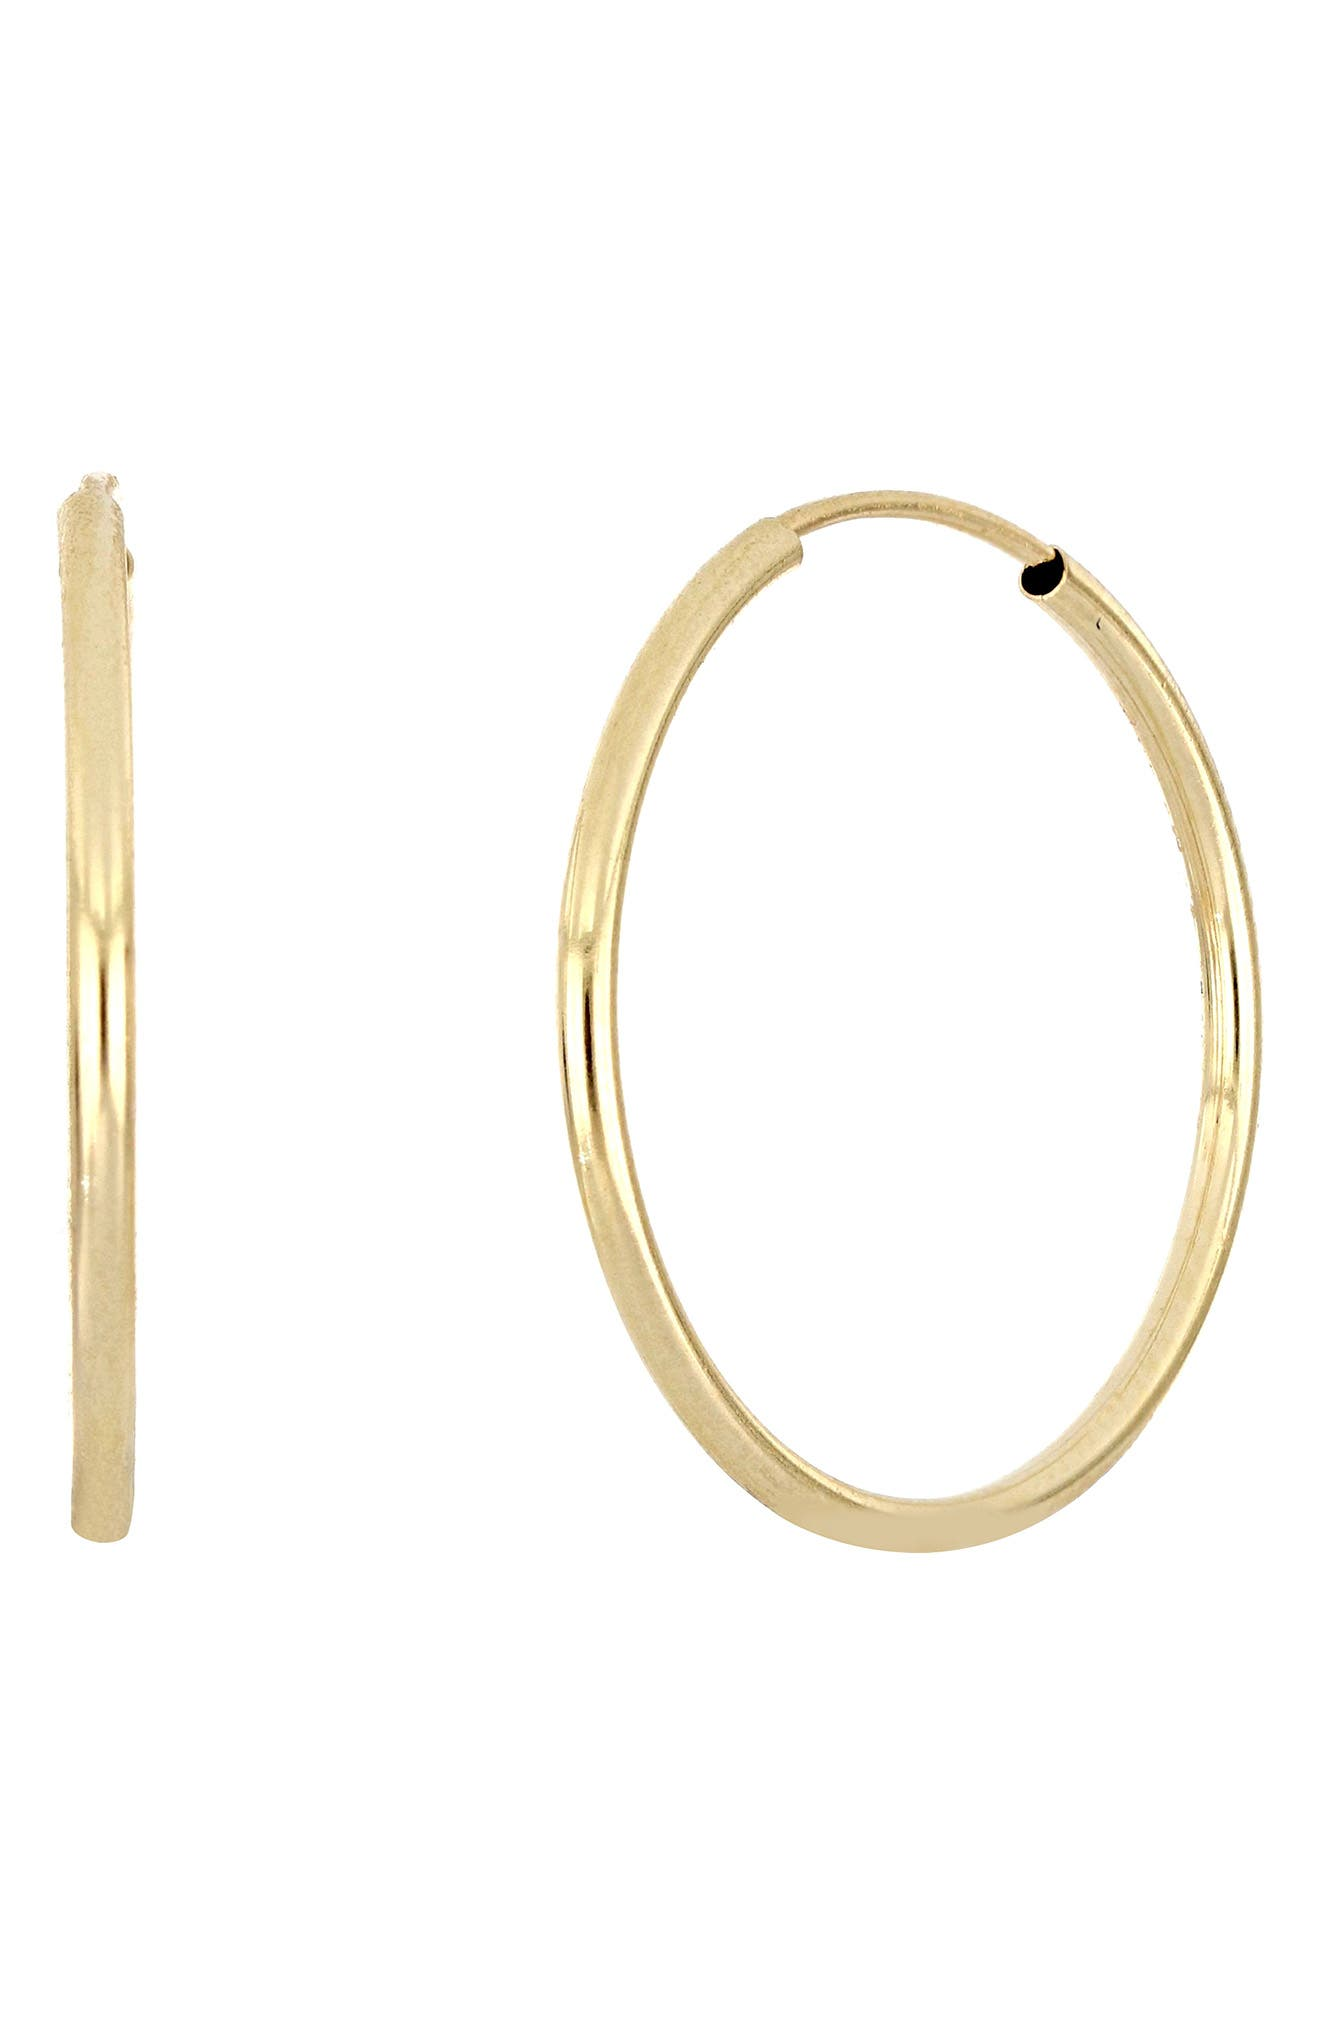 Handcrafted in Italy from 14-karat gold, these slender hoops come in an eternity design that goes with their timeless beauty. Style Name: Bony Levy Eternity Hoop Earrings (Nordstrom Exclusive). Style Number: 6090709. Available in stores.